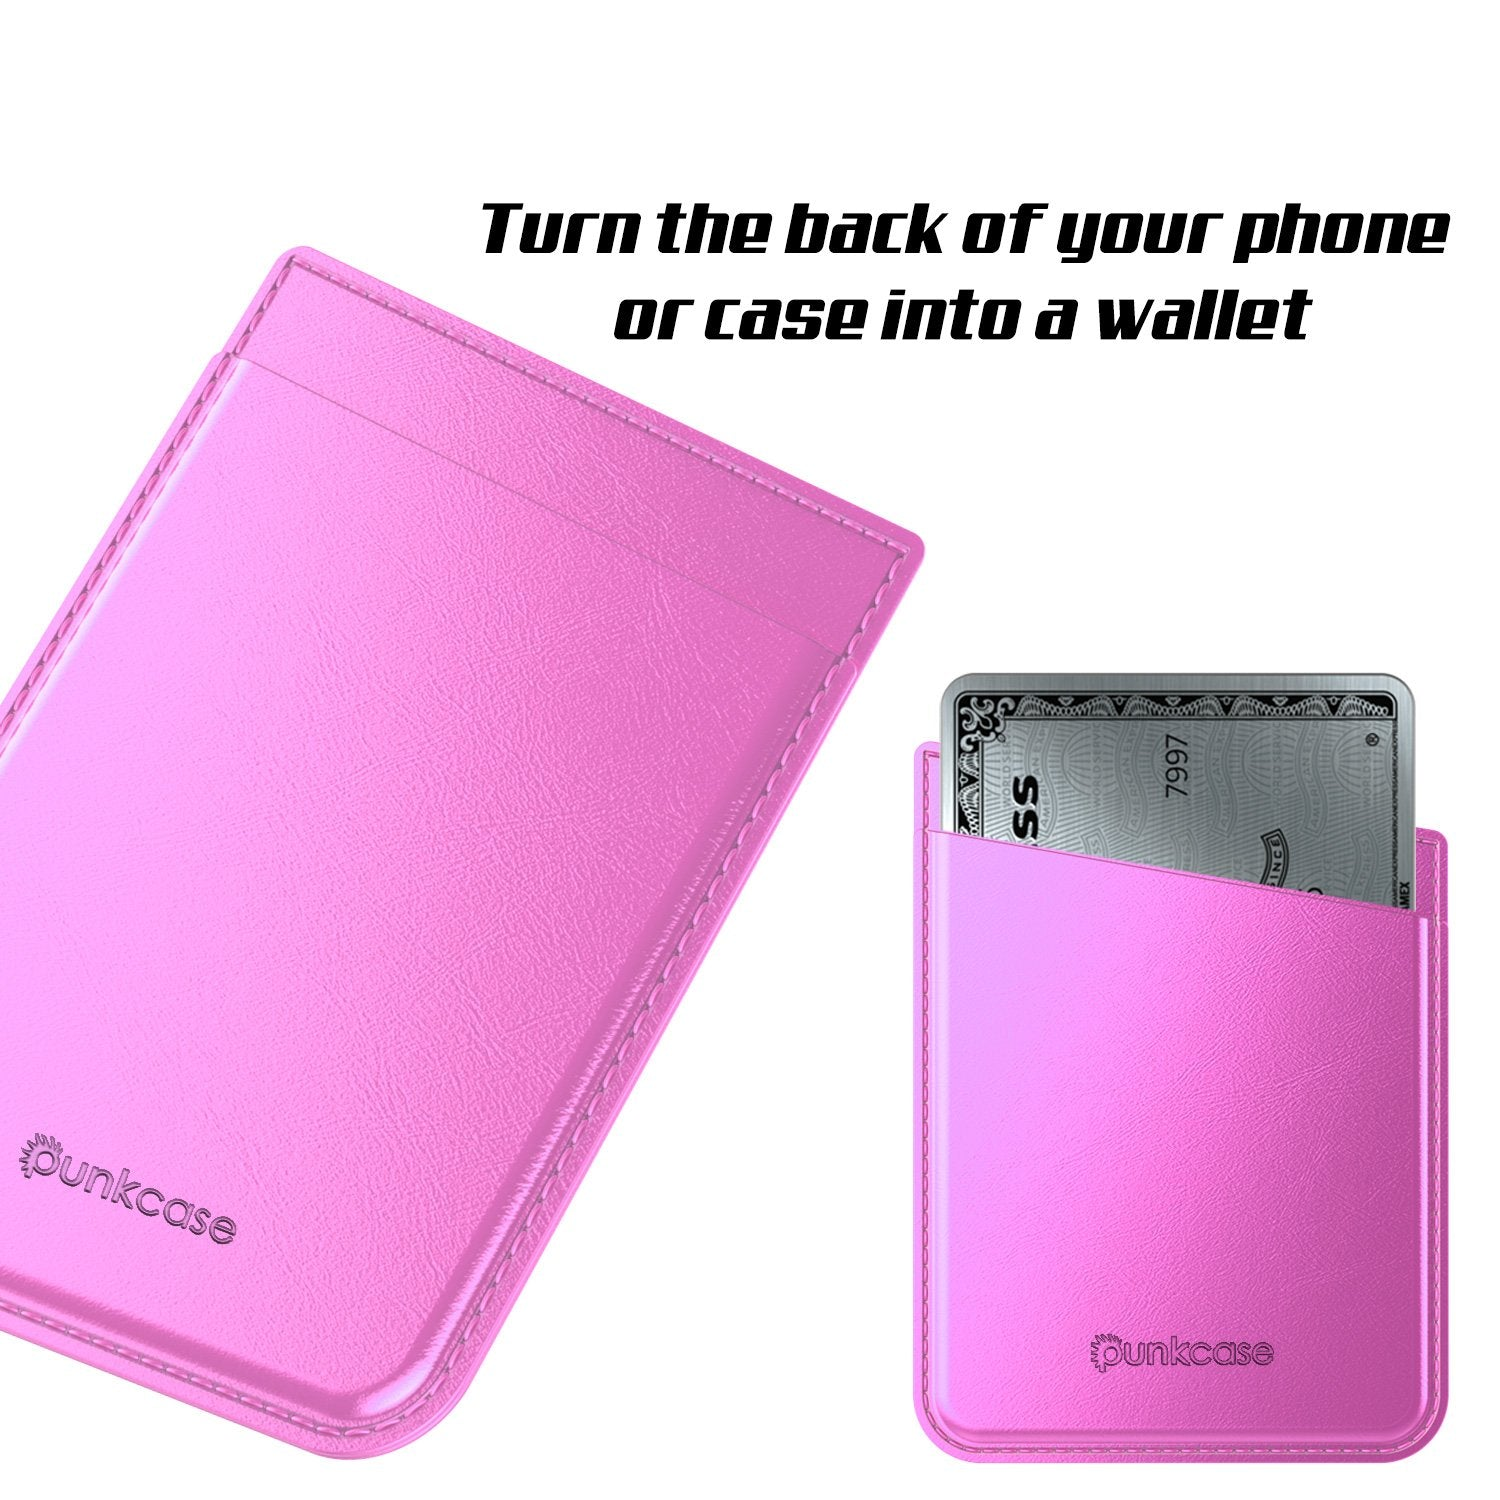 PunkCase CardStud Deluxe Stick On Wallet | Adhesive Card Holder Attachment for Back of iPhone, Android & More | Leather Pouch | [Pink] - PunkCase NZ